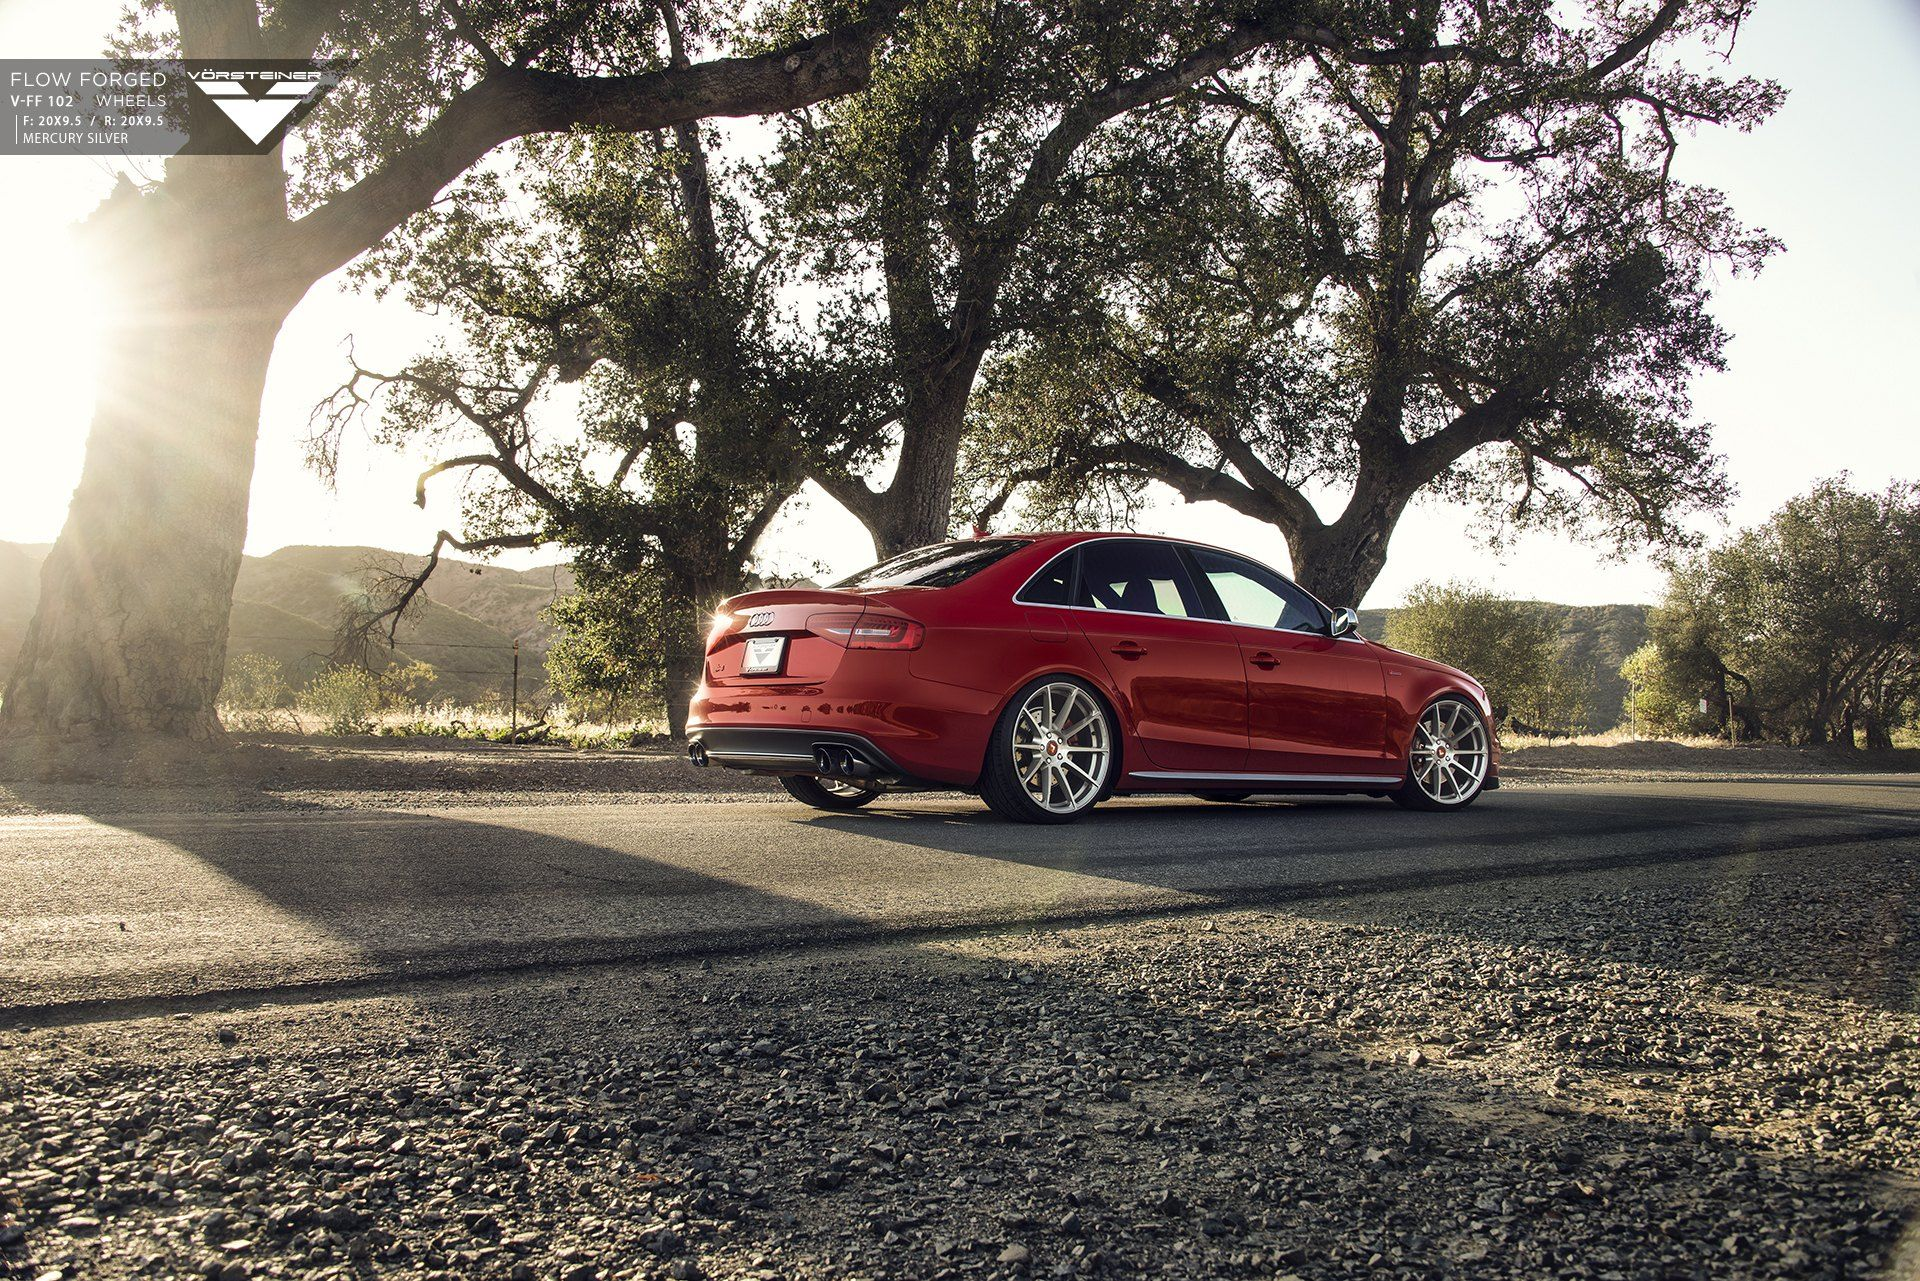 Candy Red Audi S4 Customized And Featuring Chrome Mesh Grille Red Audi Audi S4 Audi